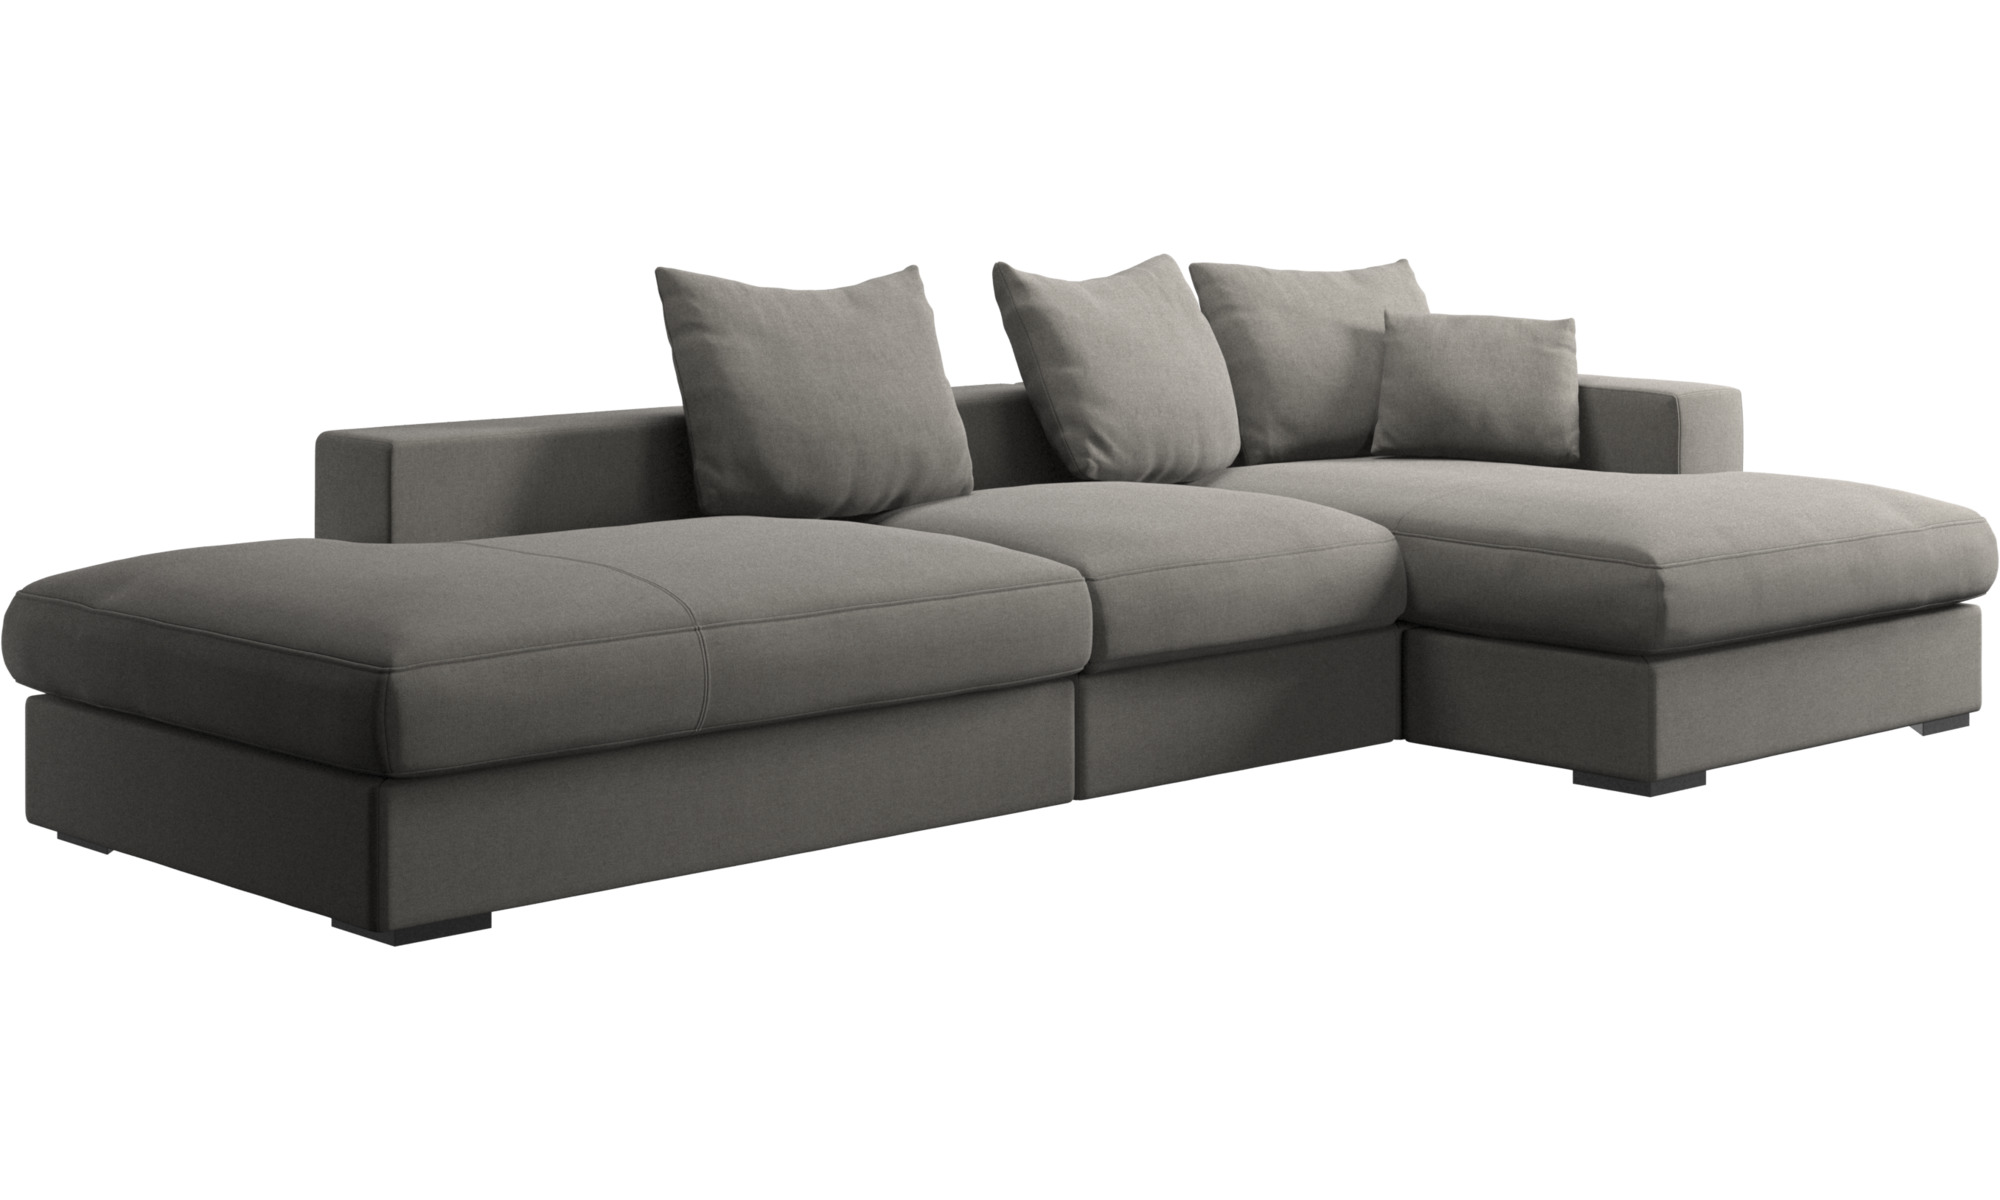 1447a7733f7f ... 3 seater sofas - Cenova sofa with lounging and resting unit - Grey -  Fabric